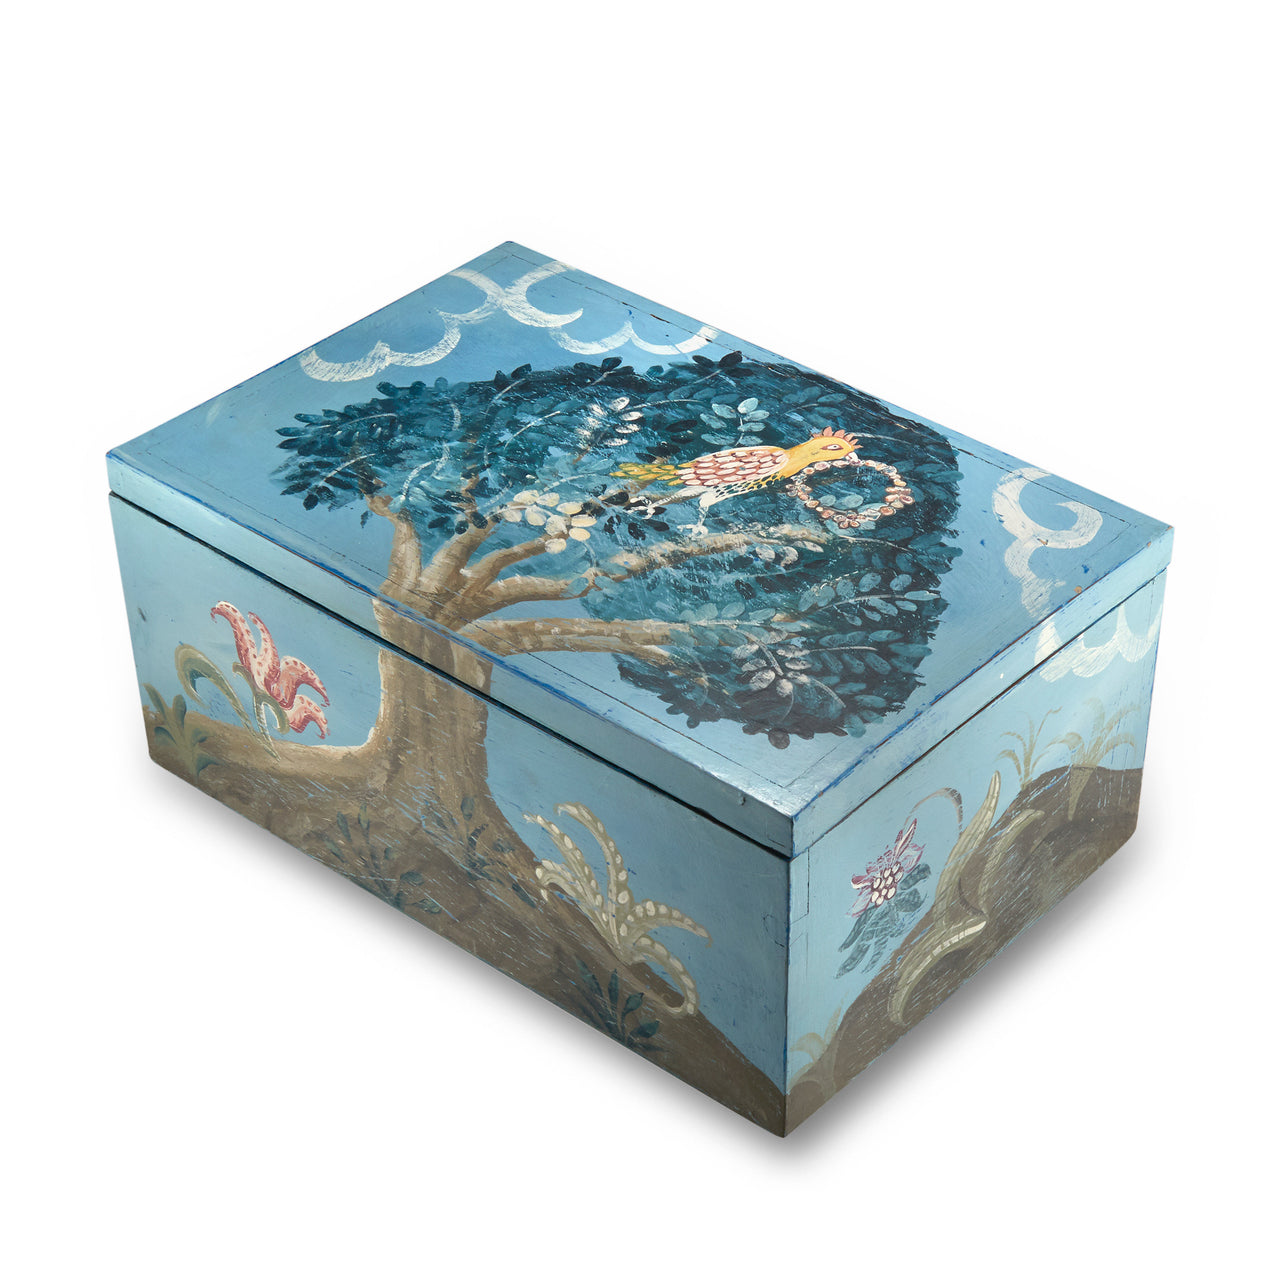 Parrot Handpainted Box